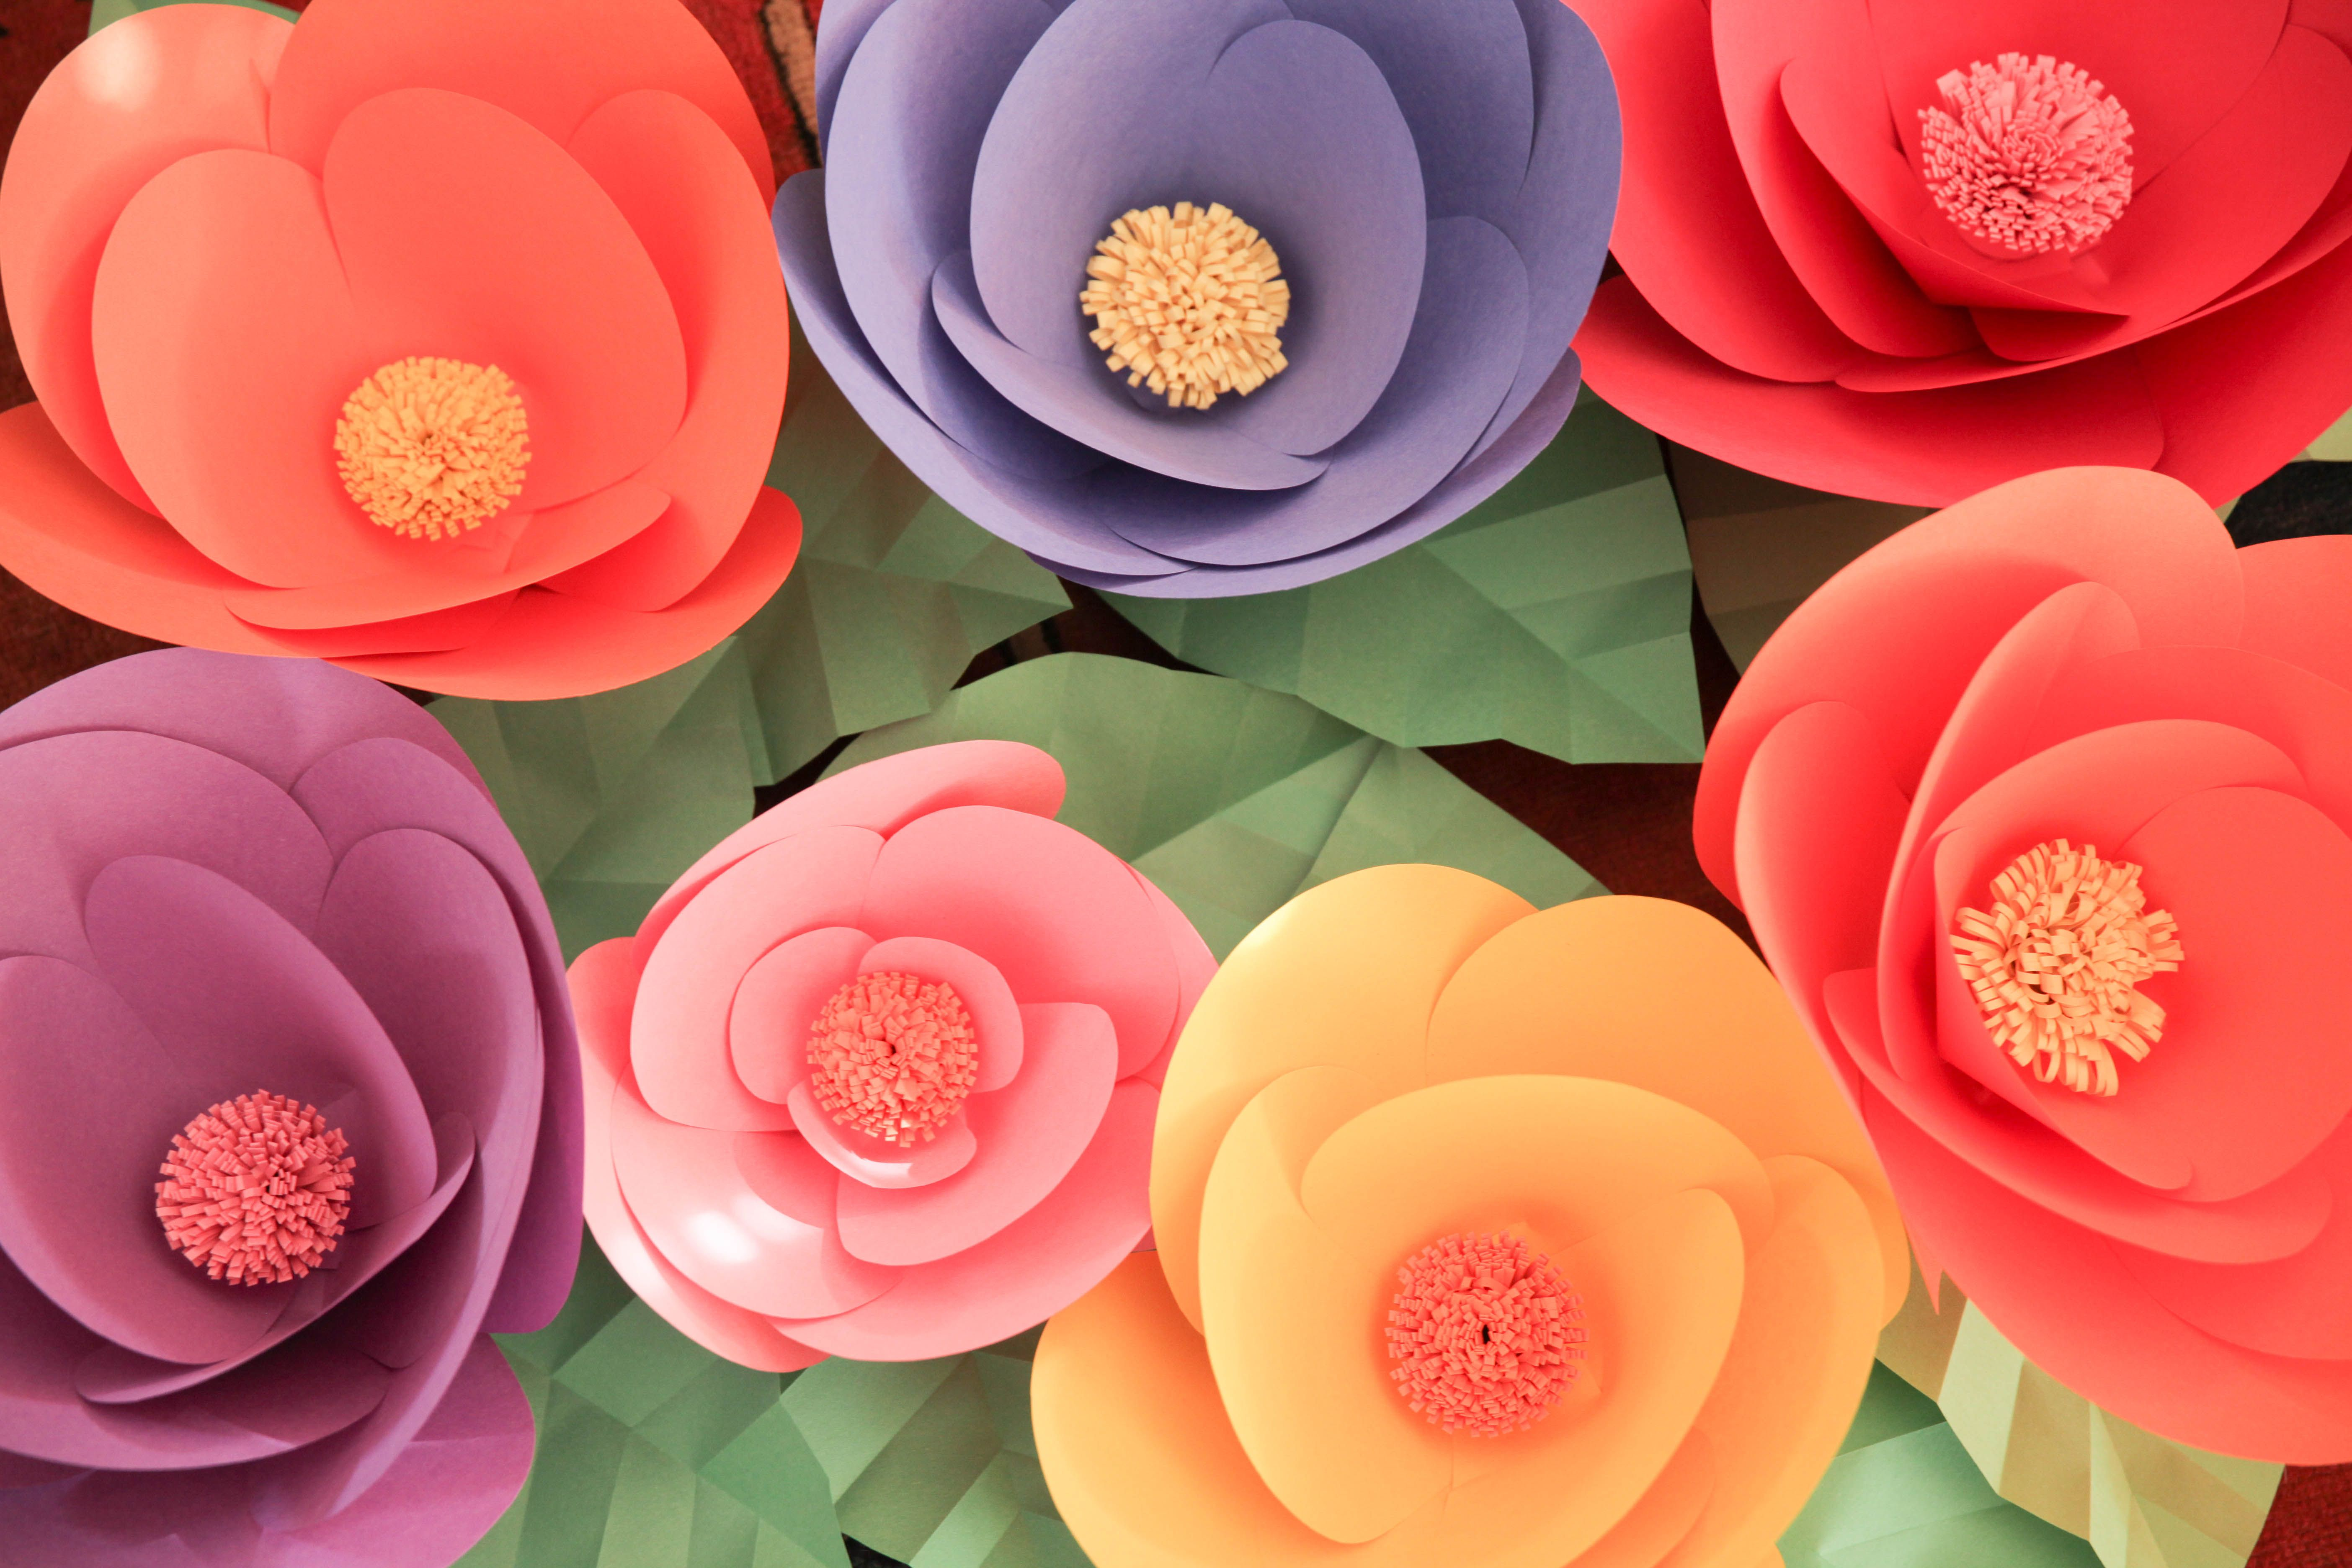 Diy Giant Paper Wall Flowers Make For A Great Statement Piece On An